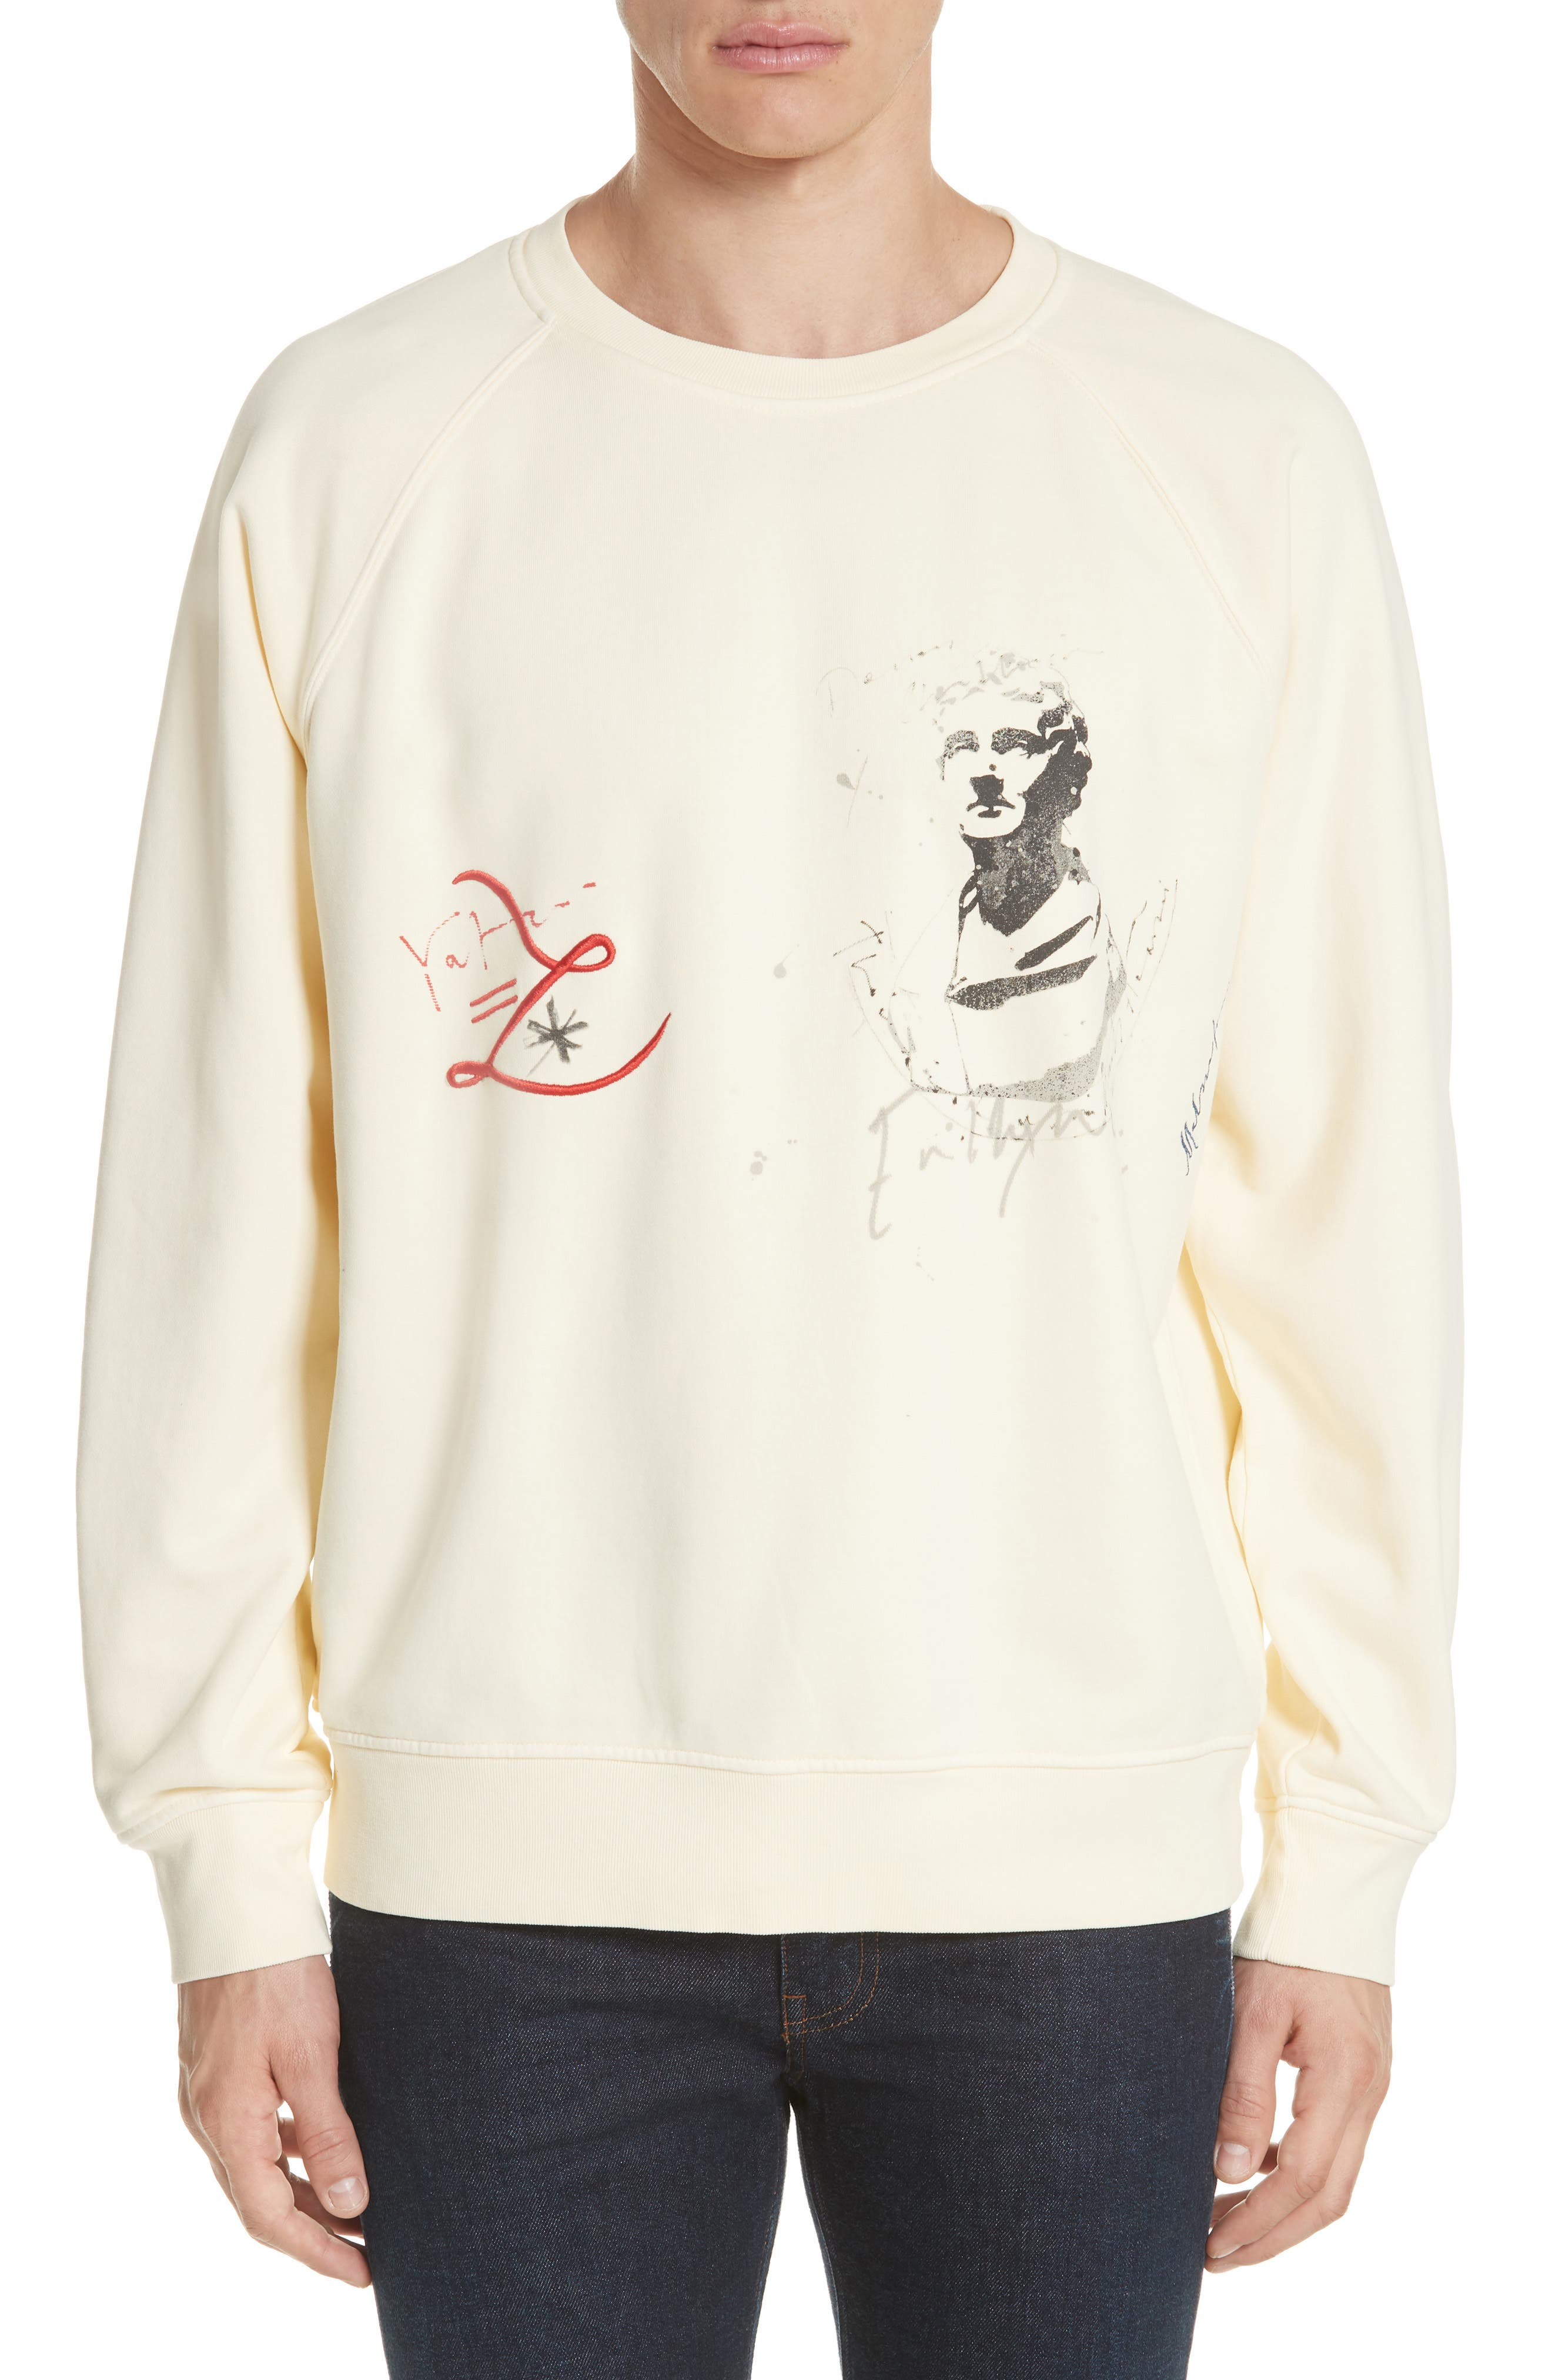 Earlford Graphic Sweatshirt,                             Main thumbnail 1, color,                             Pale Yellow